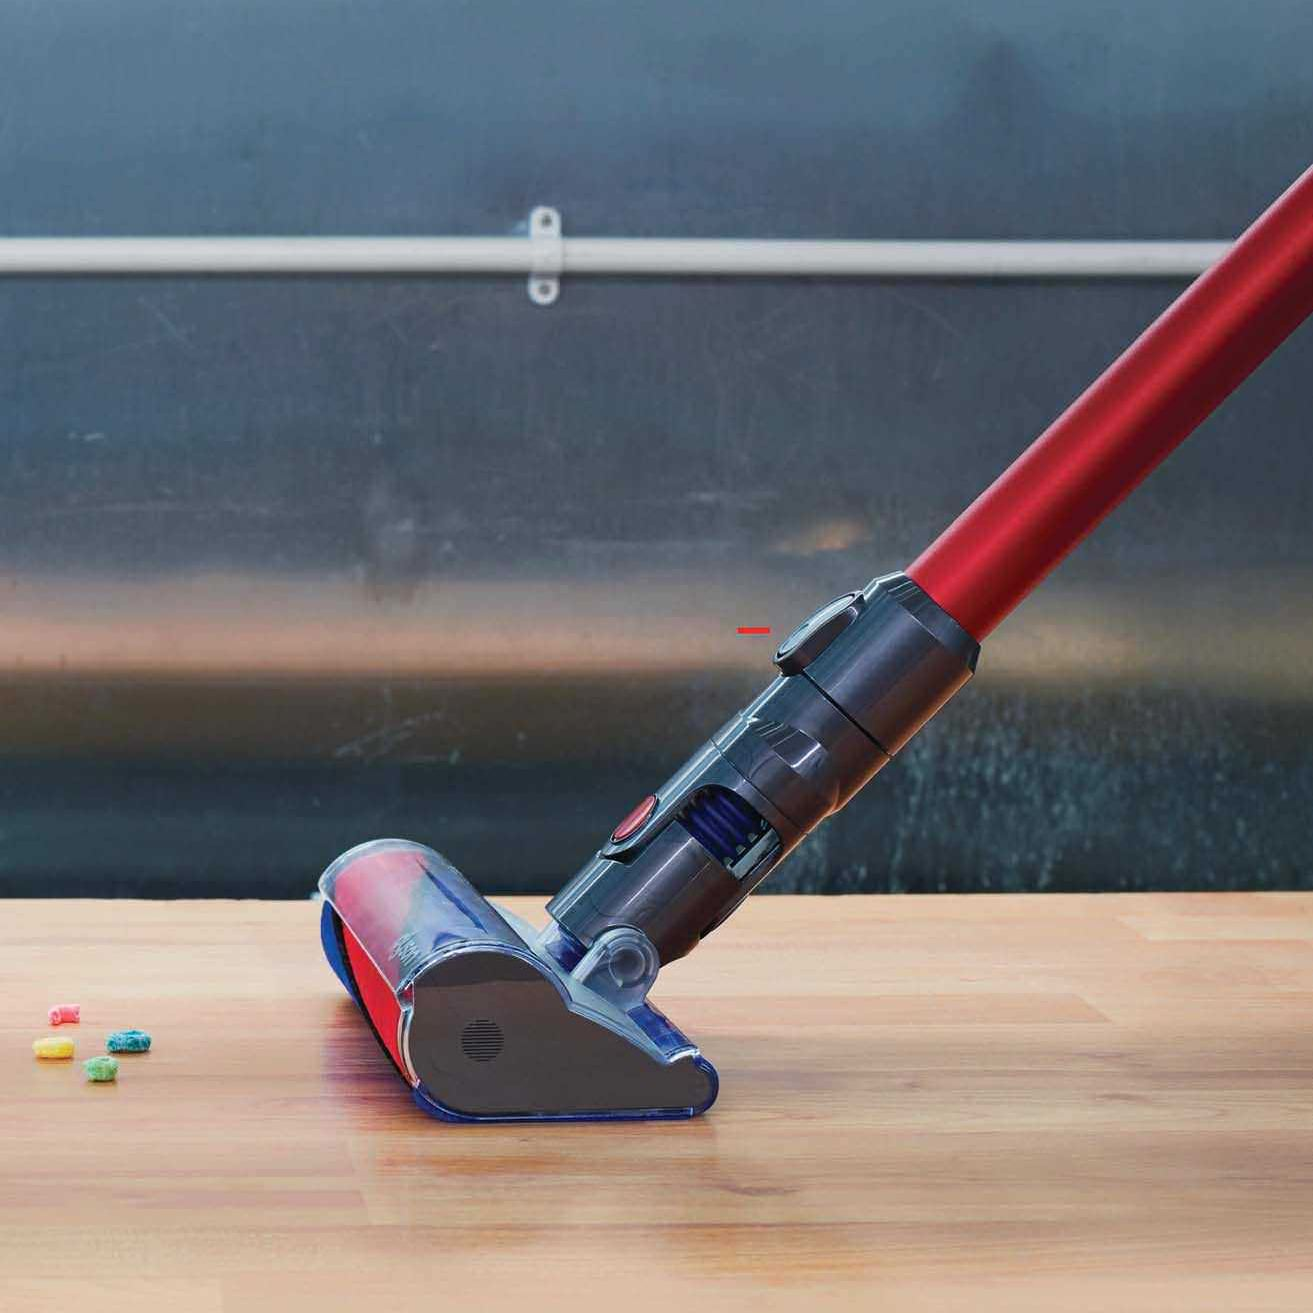 Dyson: The House That Suction Built